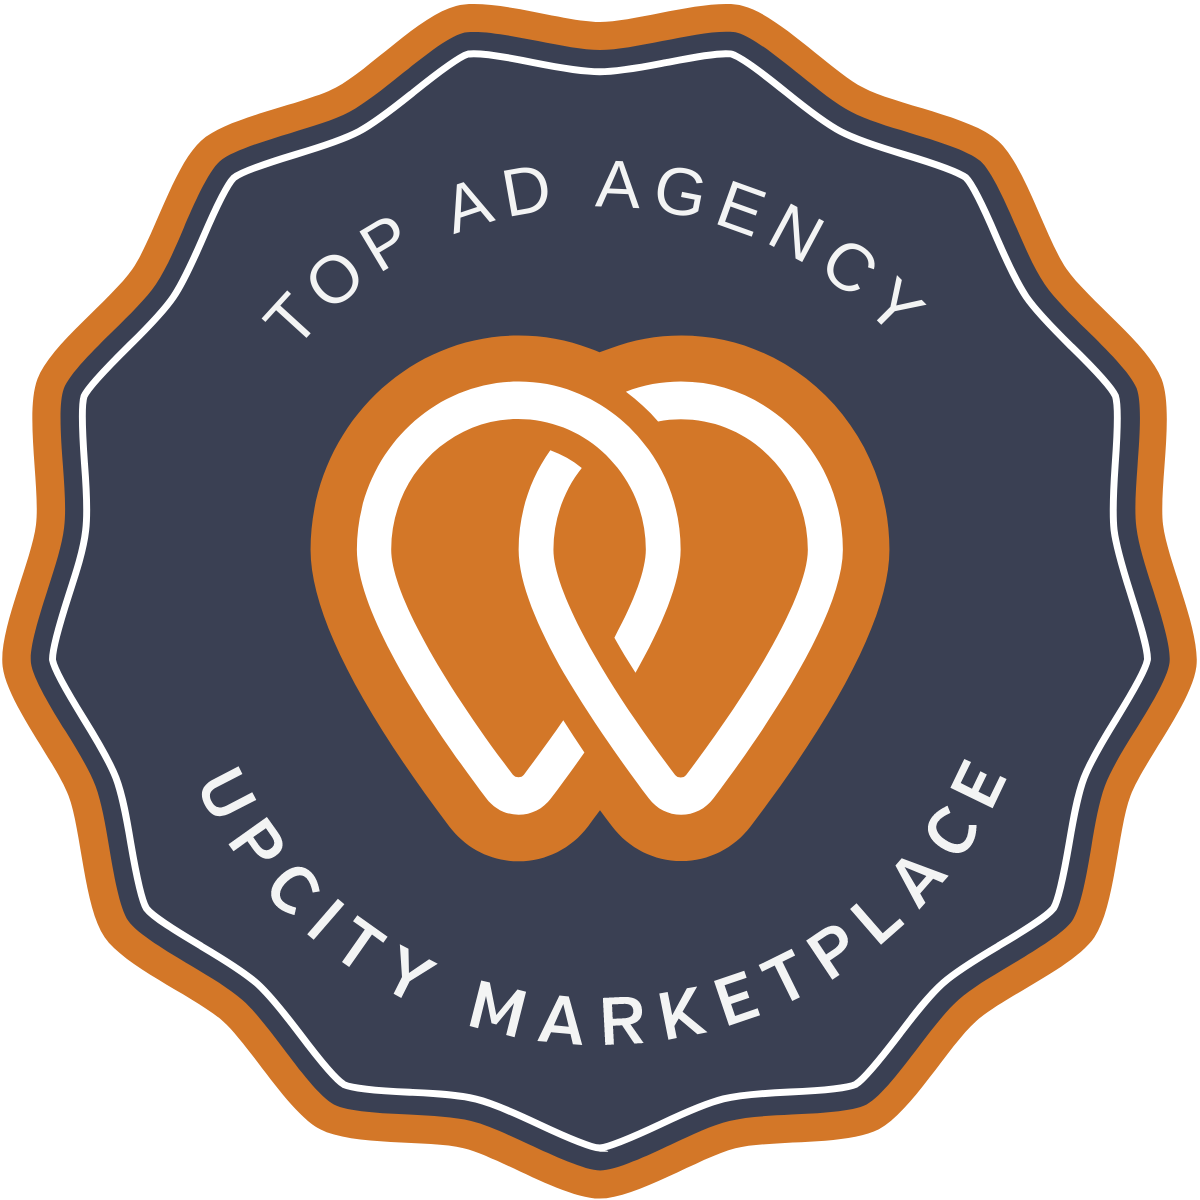 upcity badge-top ad agency